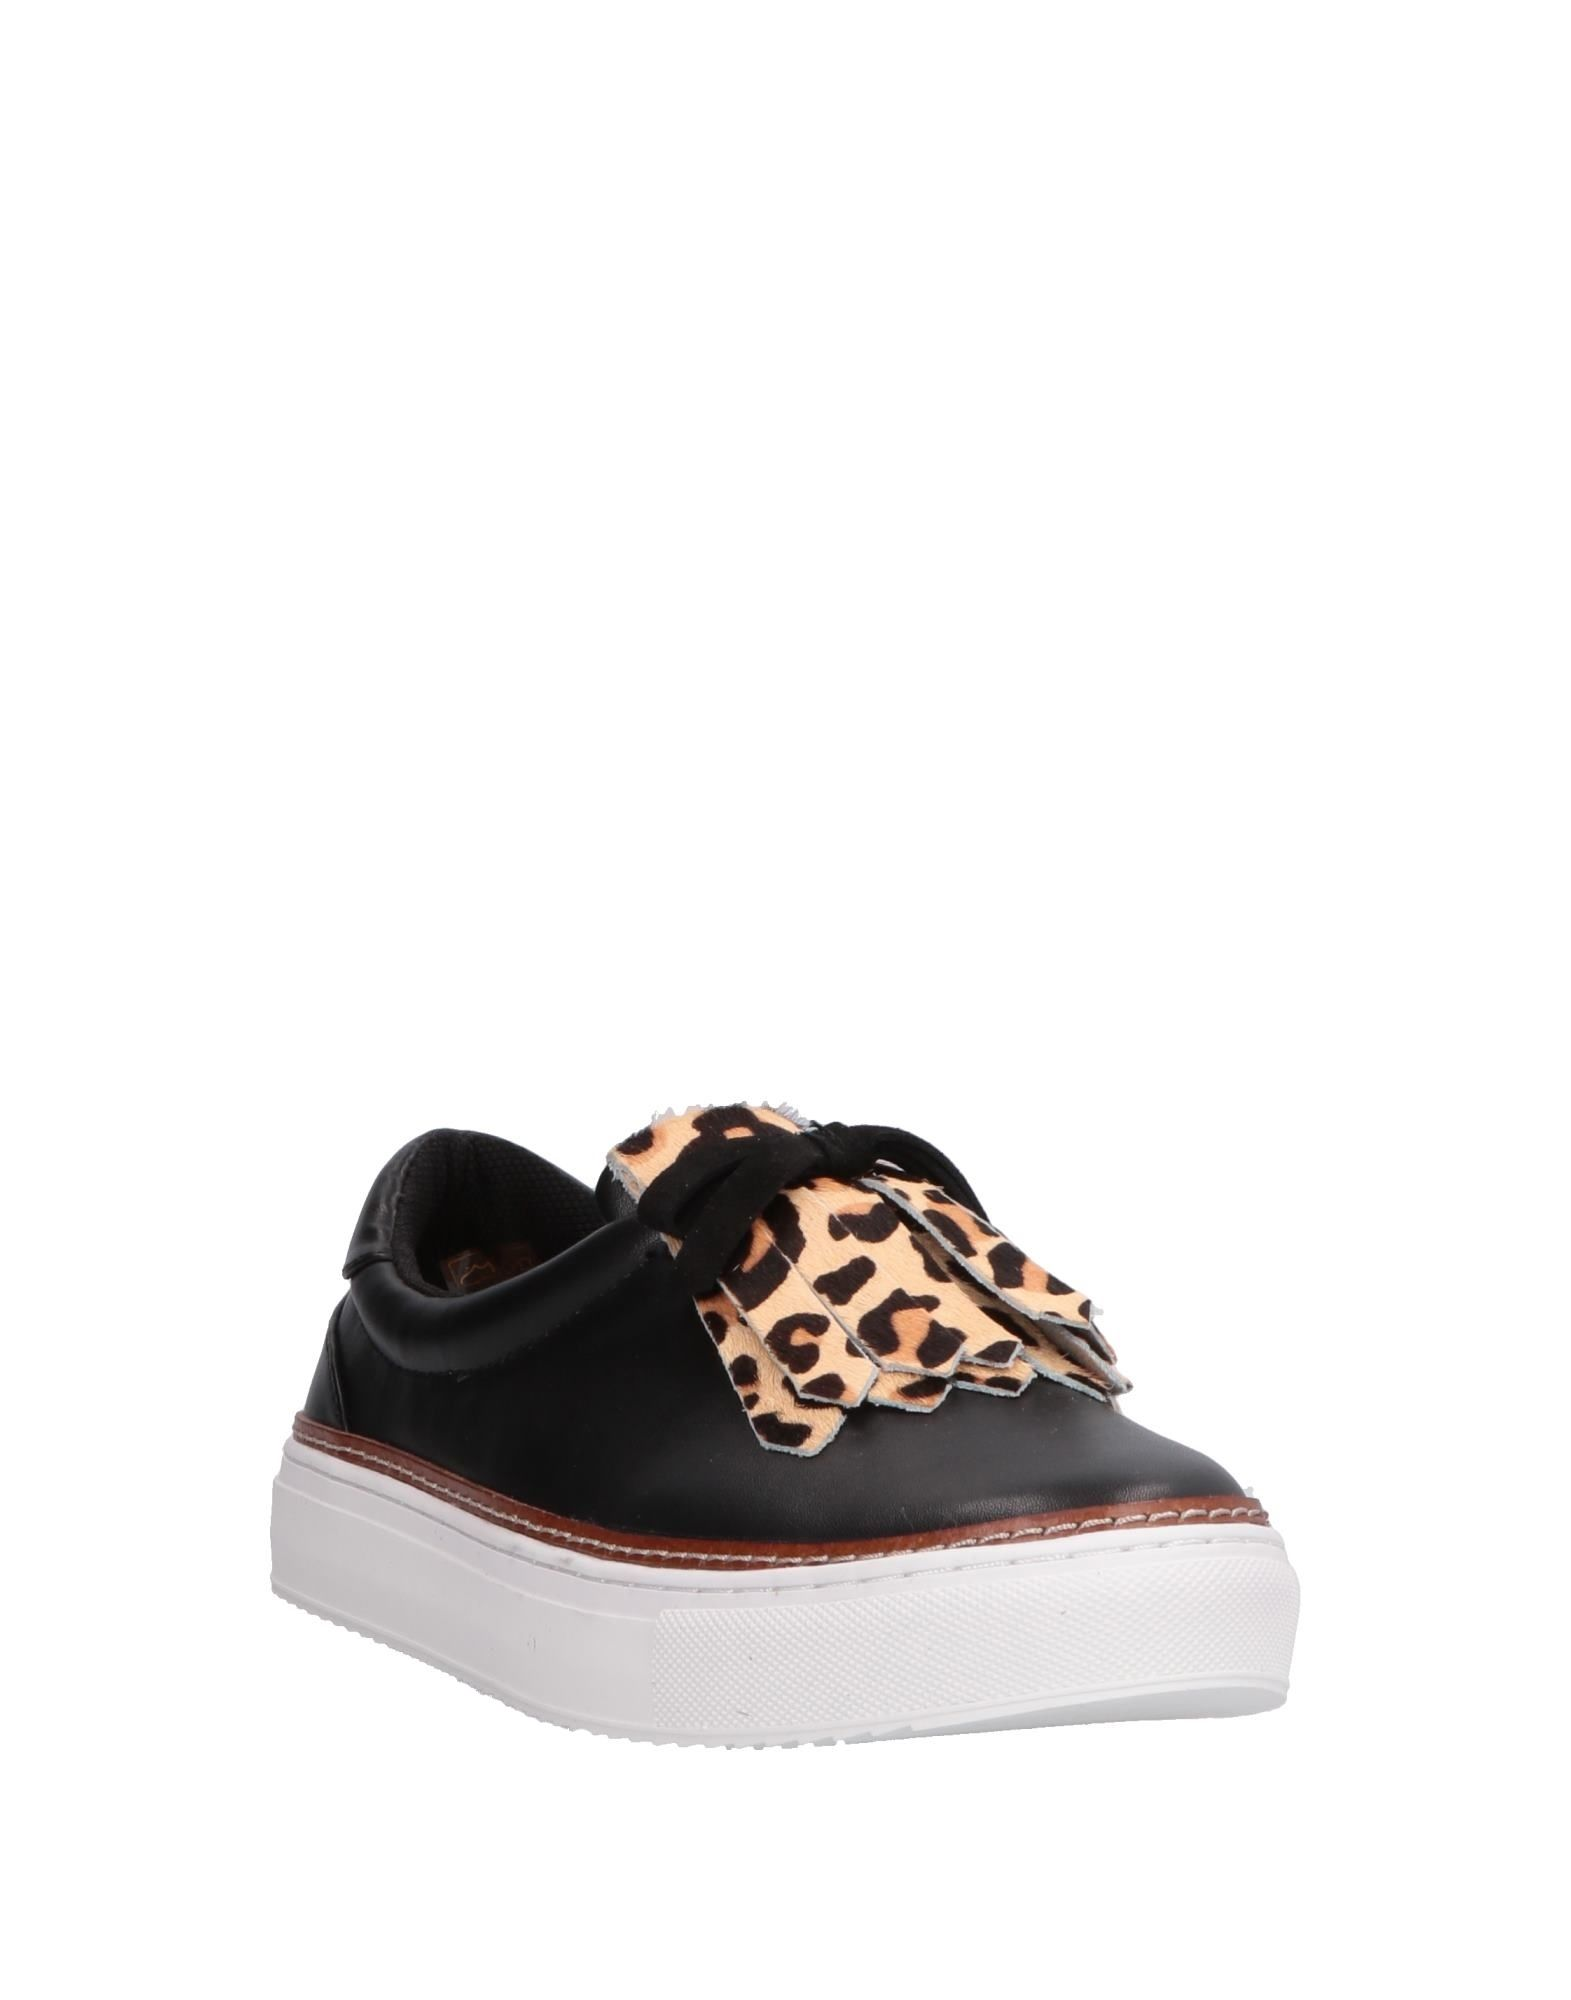 Pepe Jeans Sneakers - Women Pepe Jeans Sneakers Sneakers Sneakers online on  United Kingdom - 11578171LQ df9c55